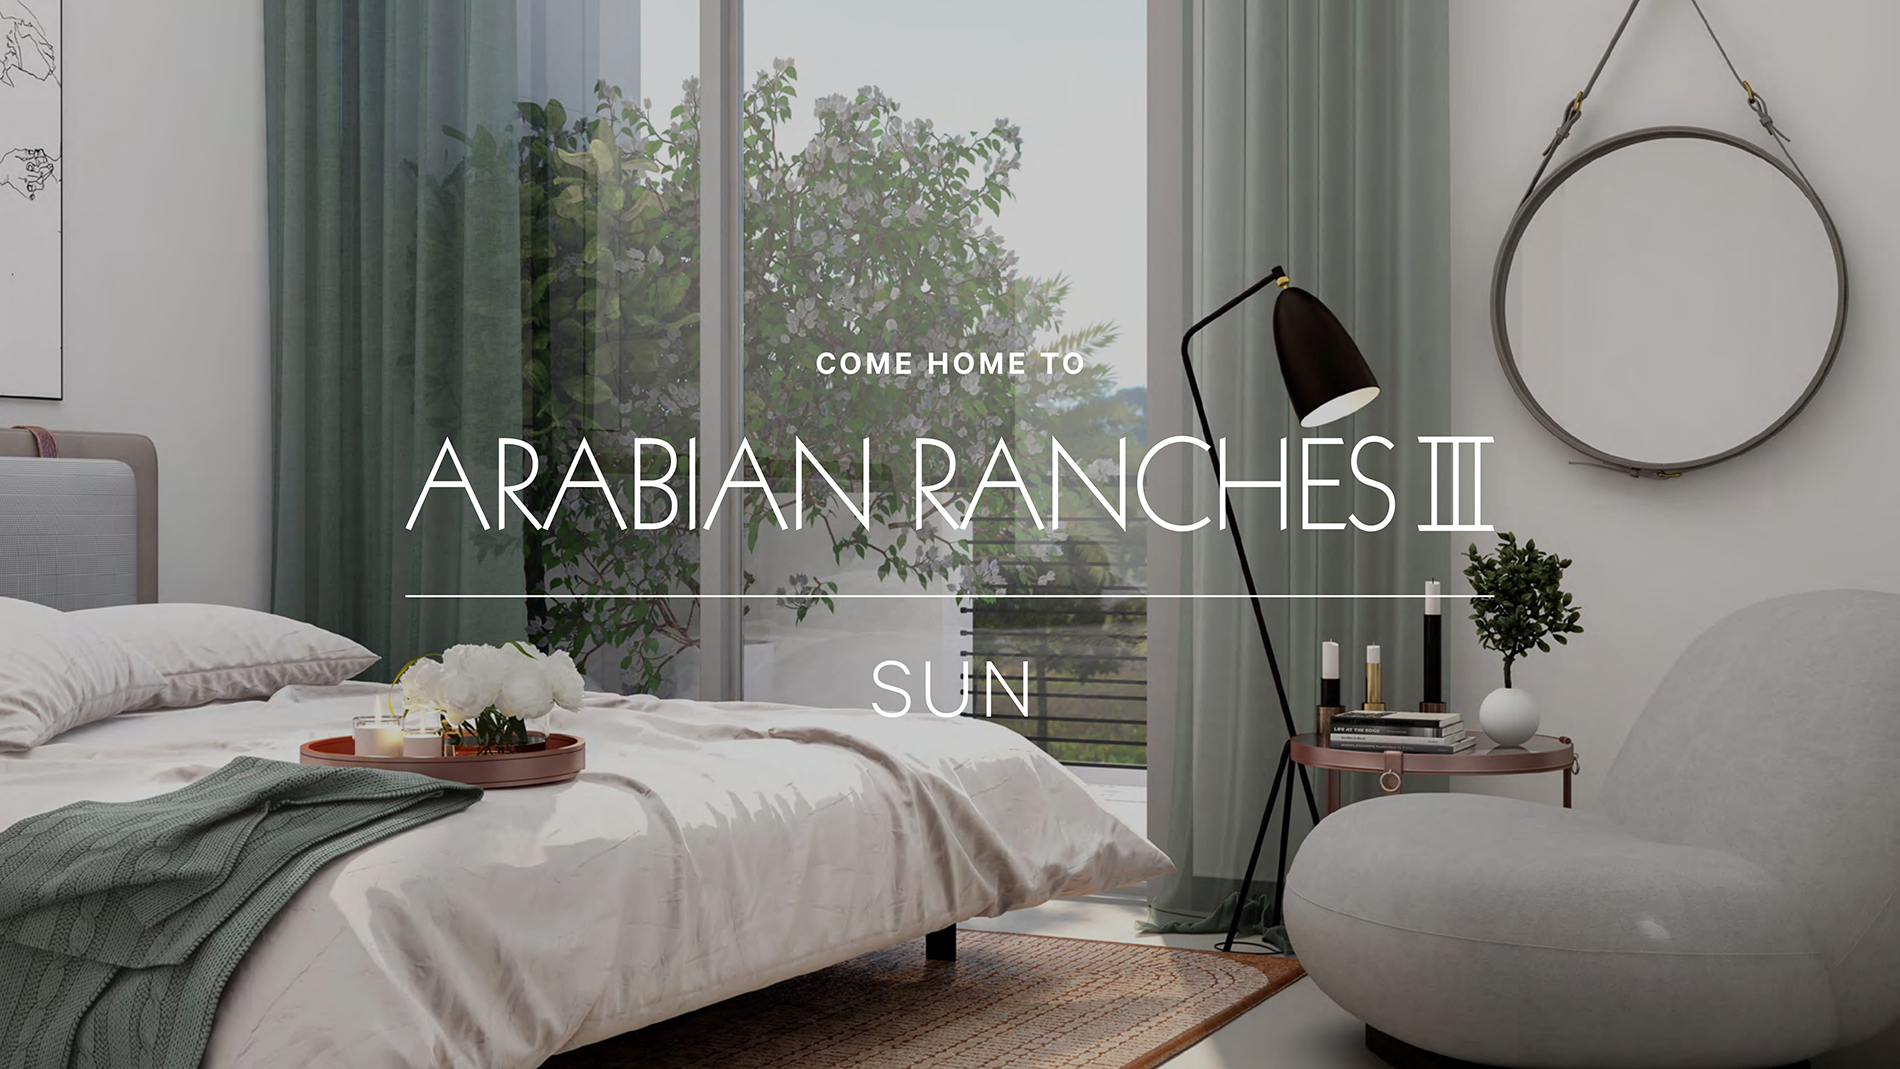 76688sun-arabian-ranches-hero.jpg